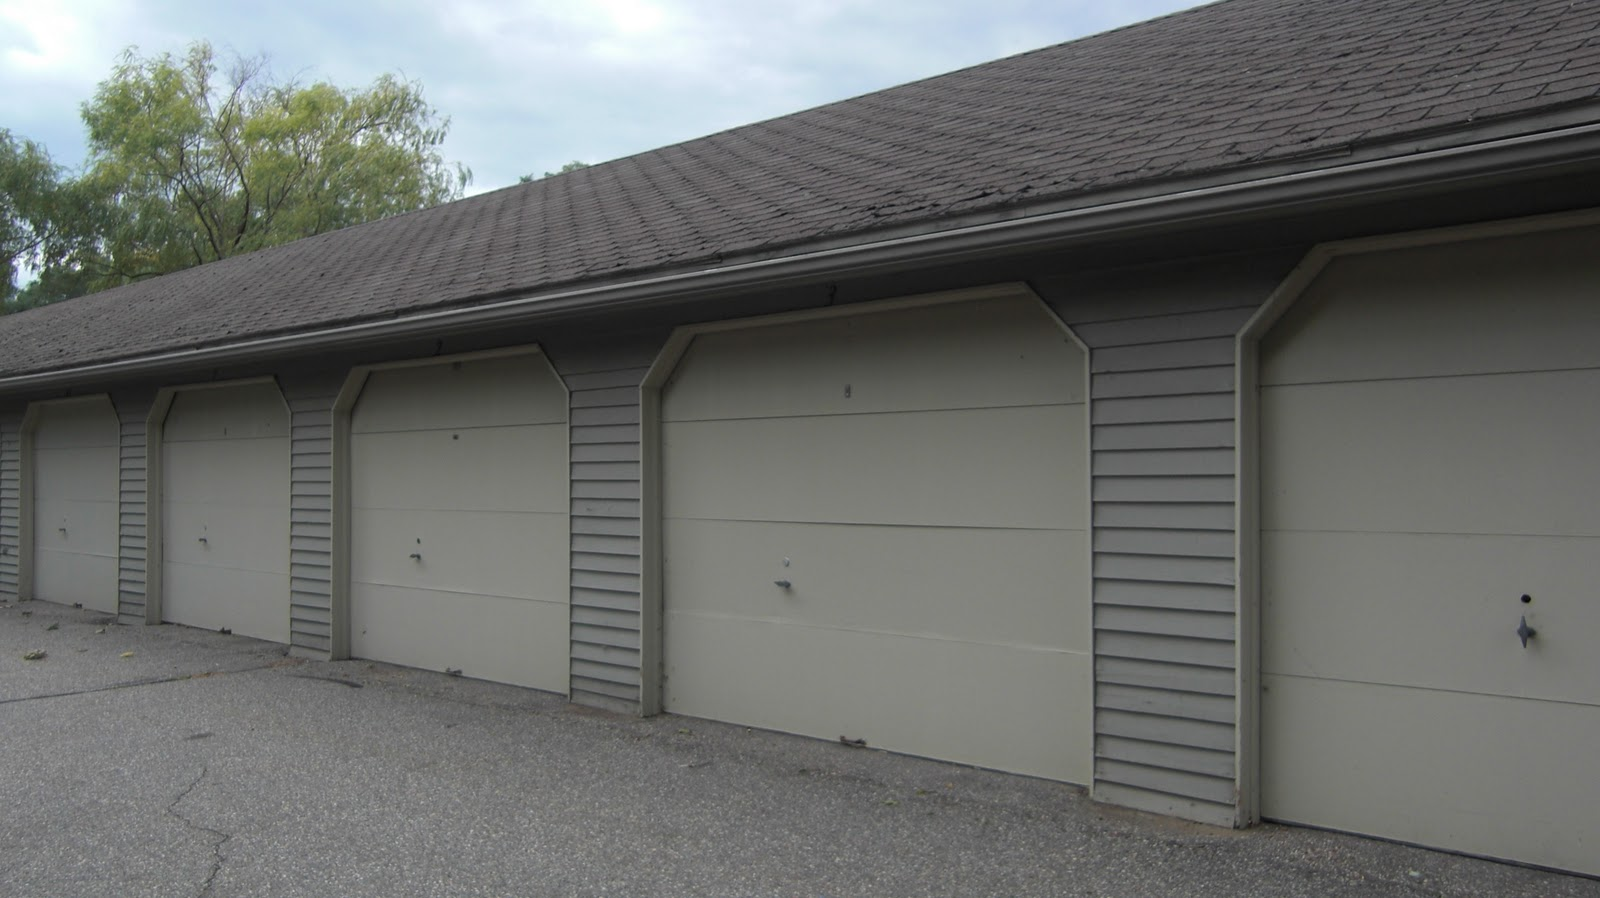 898 #376F94 Garage With Automatic Door Opener wallpaper Garage Doors Electric Opening 36051600